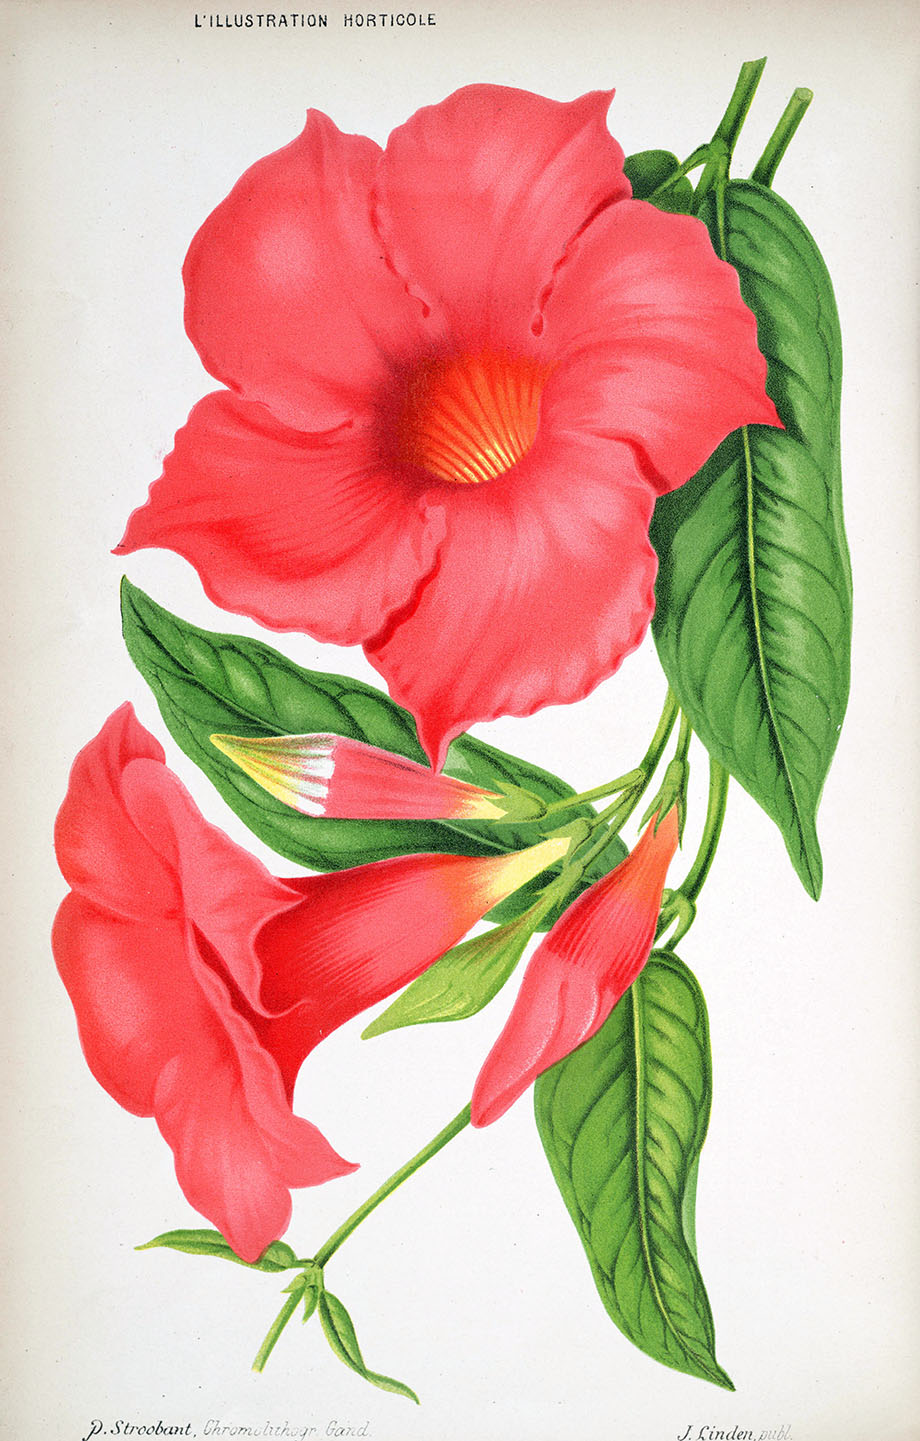 Dipladenia splendens, L'illustration horticole.